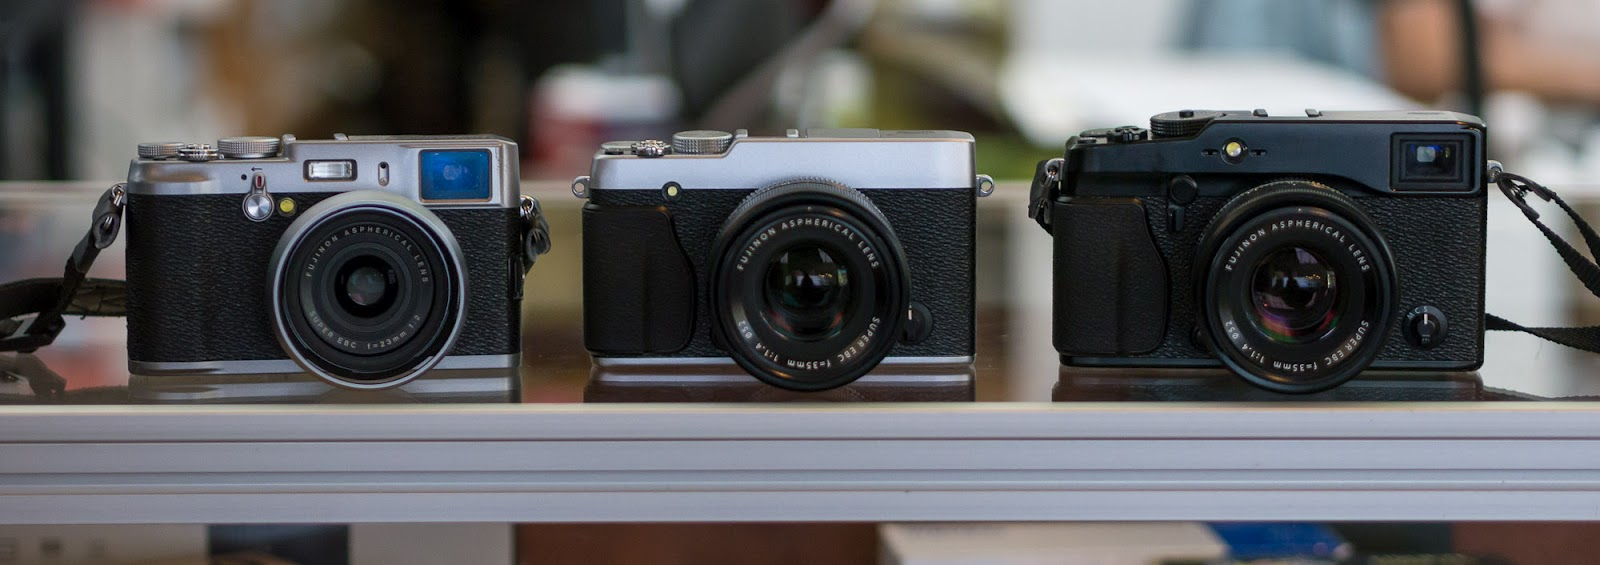 The X-E1 body I handled was a prototype and it did not even have its